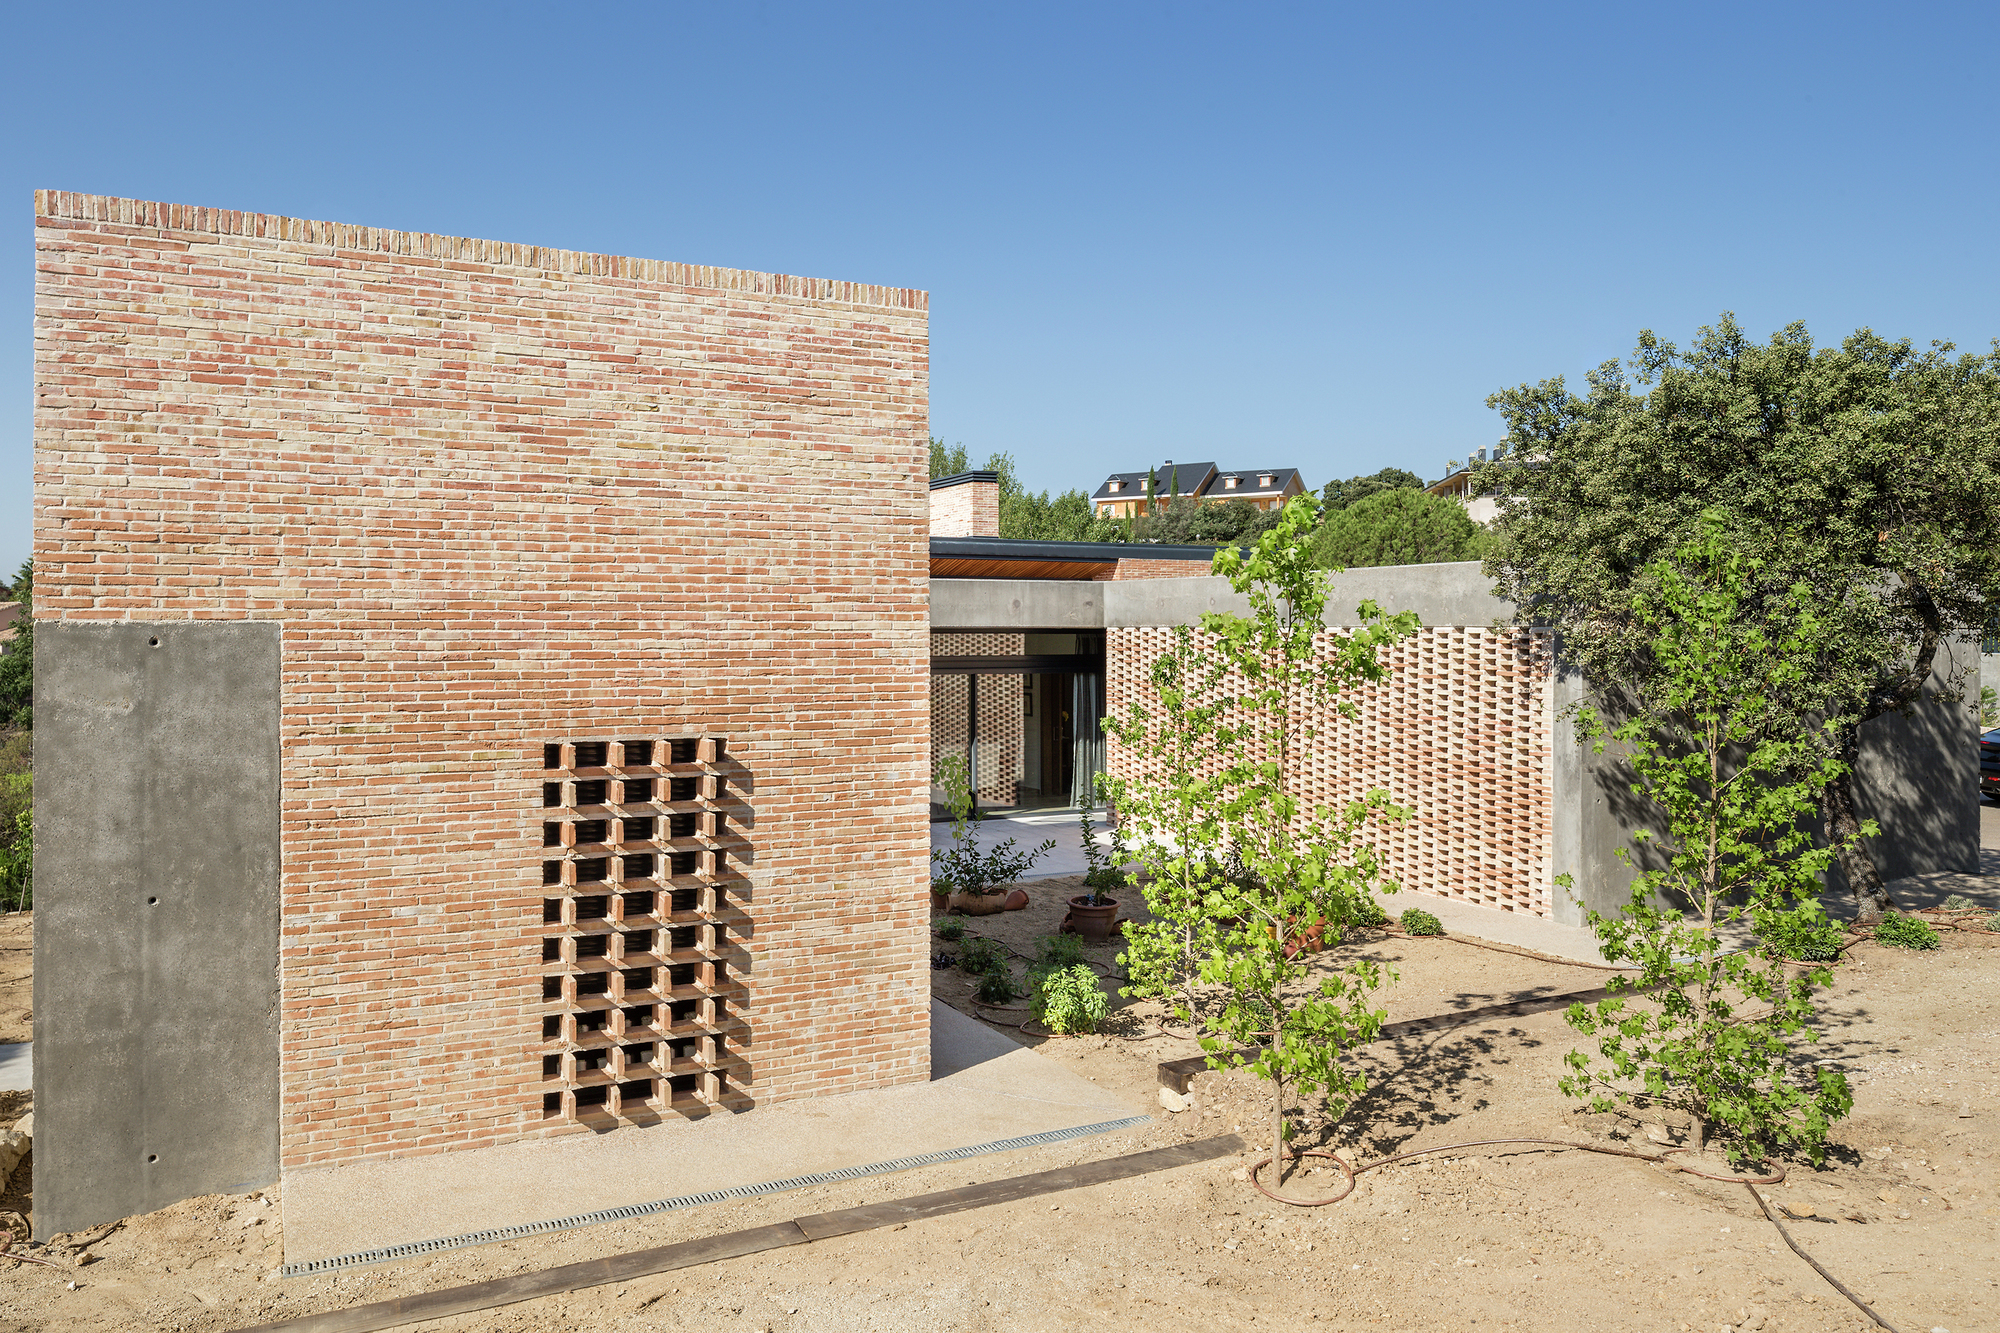 Gallery of single family house in molino de la hoz mariano molina iniesta 2 - Molino de la hoz ...